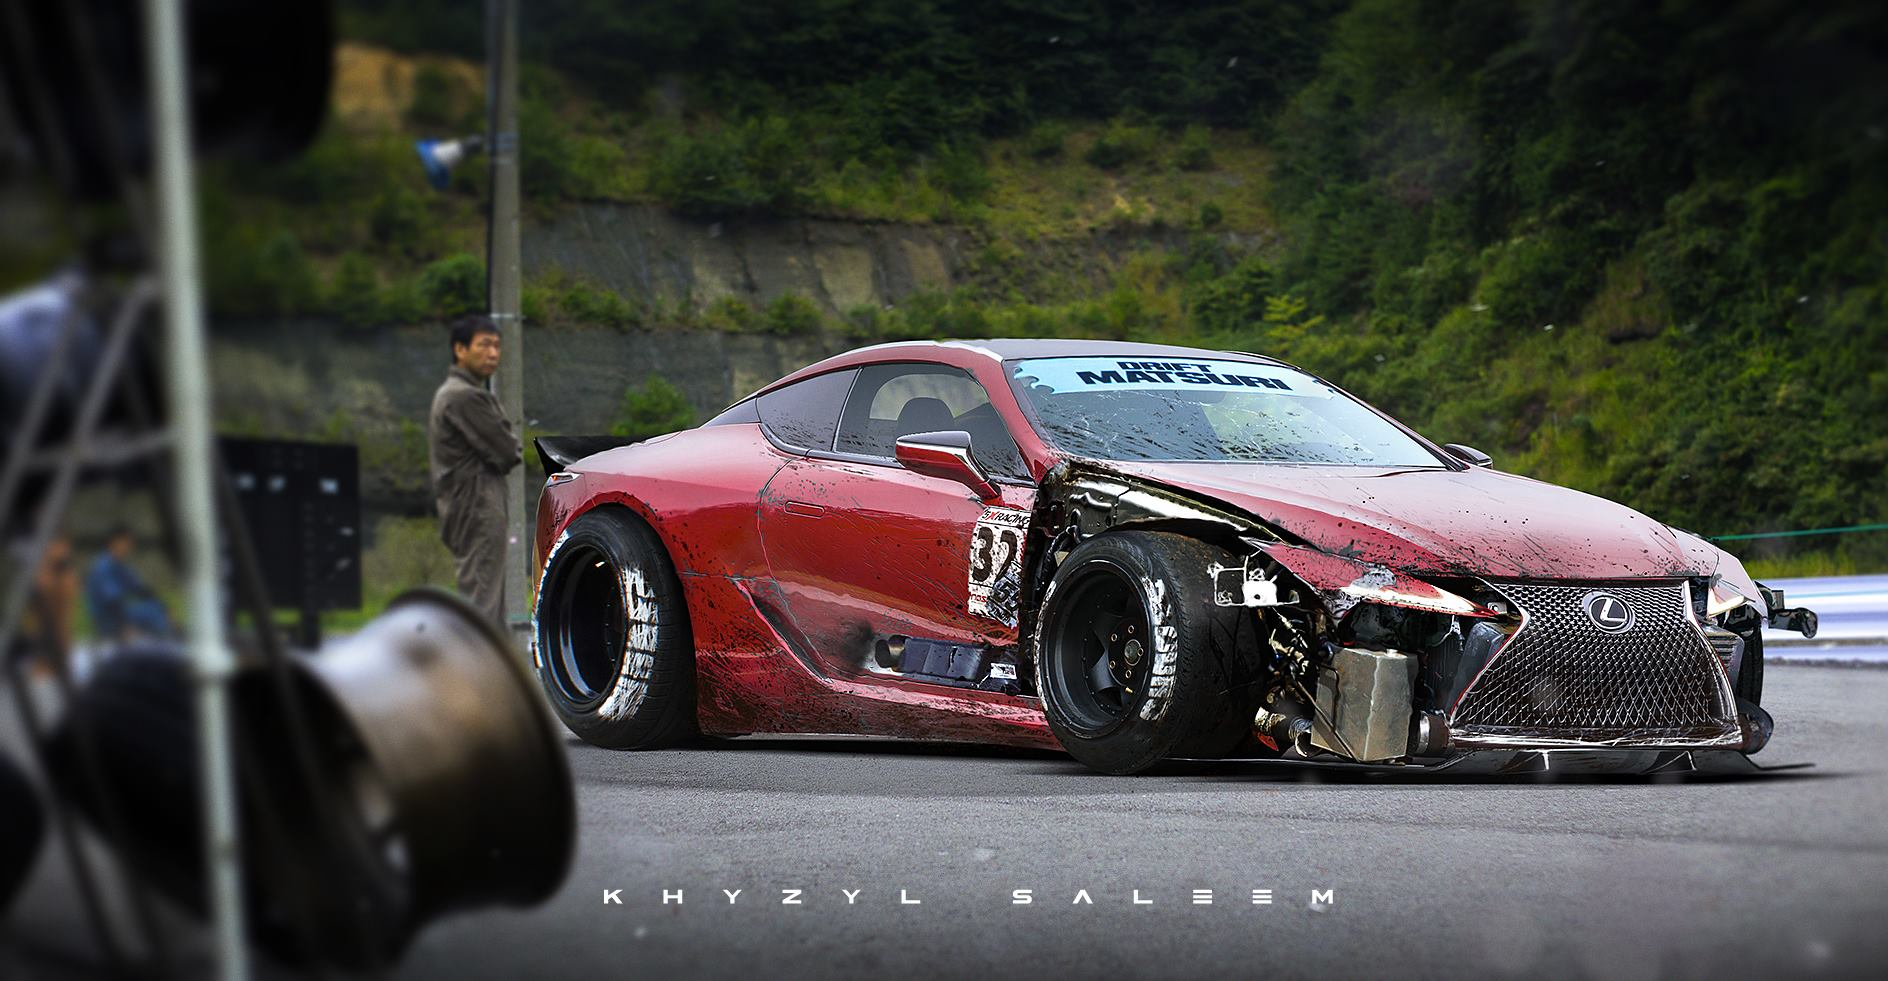 lexus lc 500 drift car rendering follows the story of the real lfa